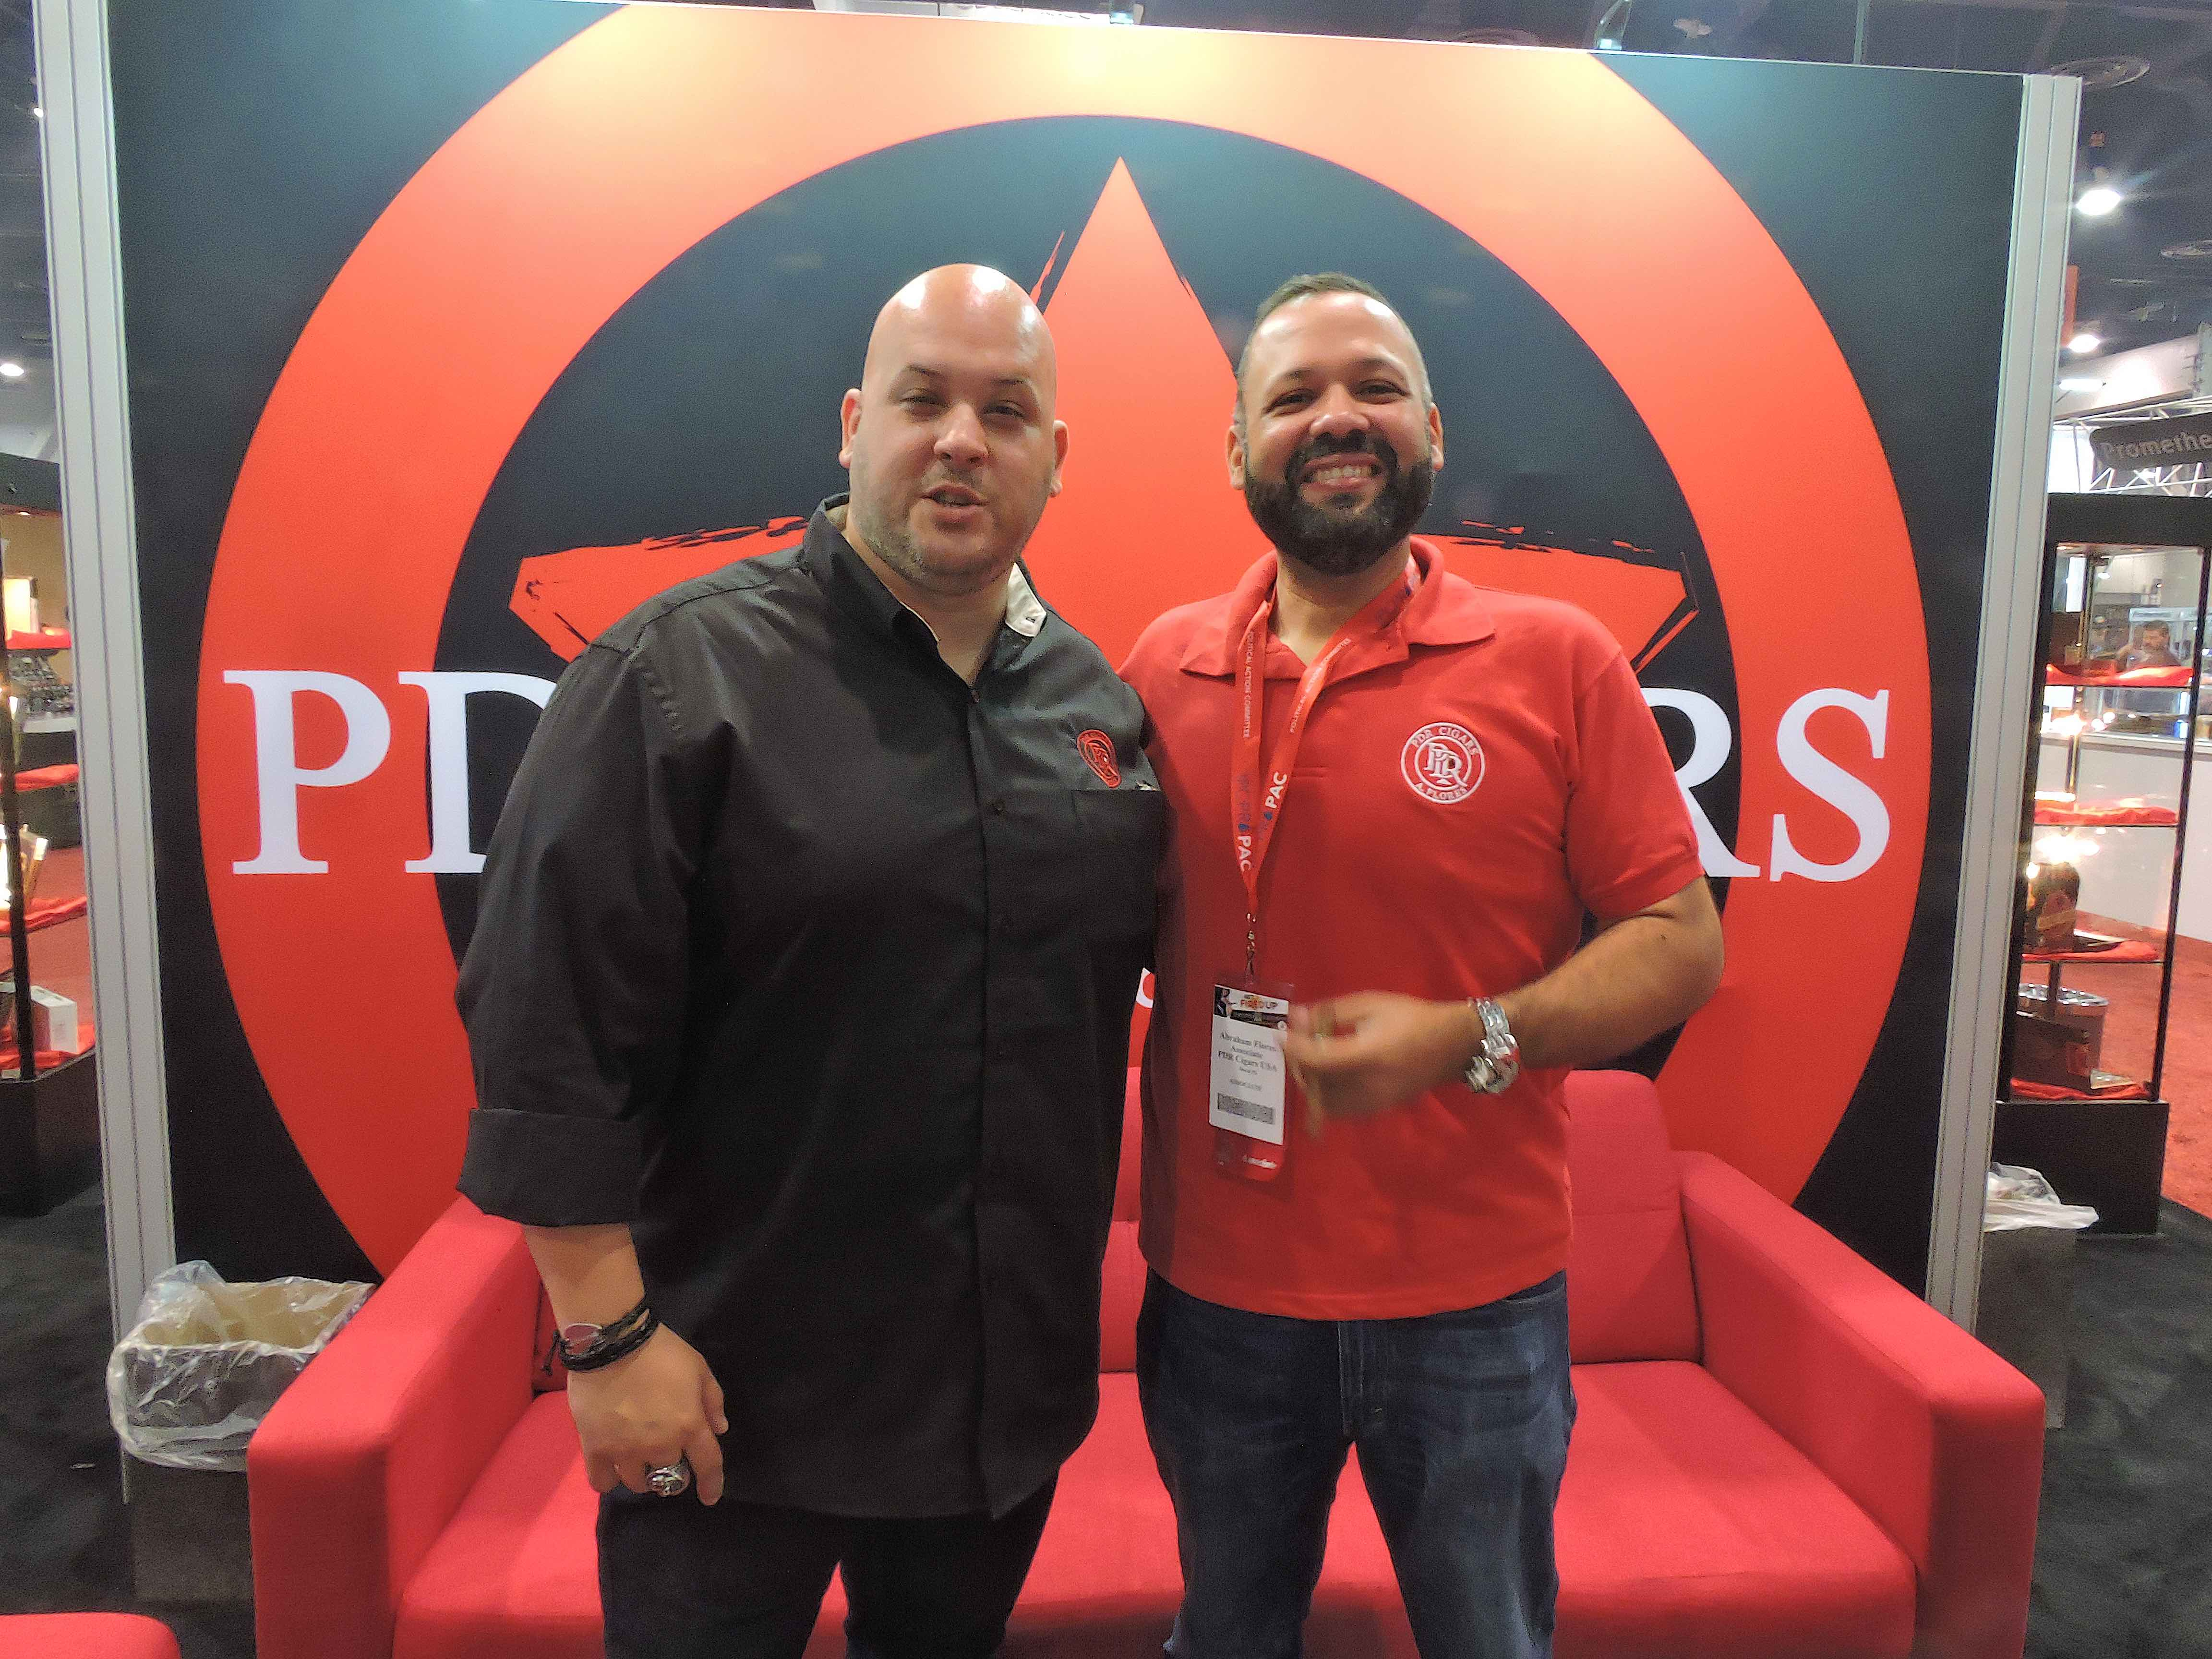 Feature Story: Spotlight on PDR Cigars at the 2018 IPCPR